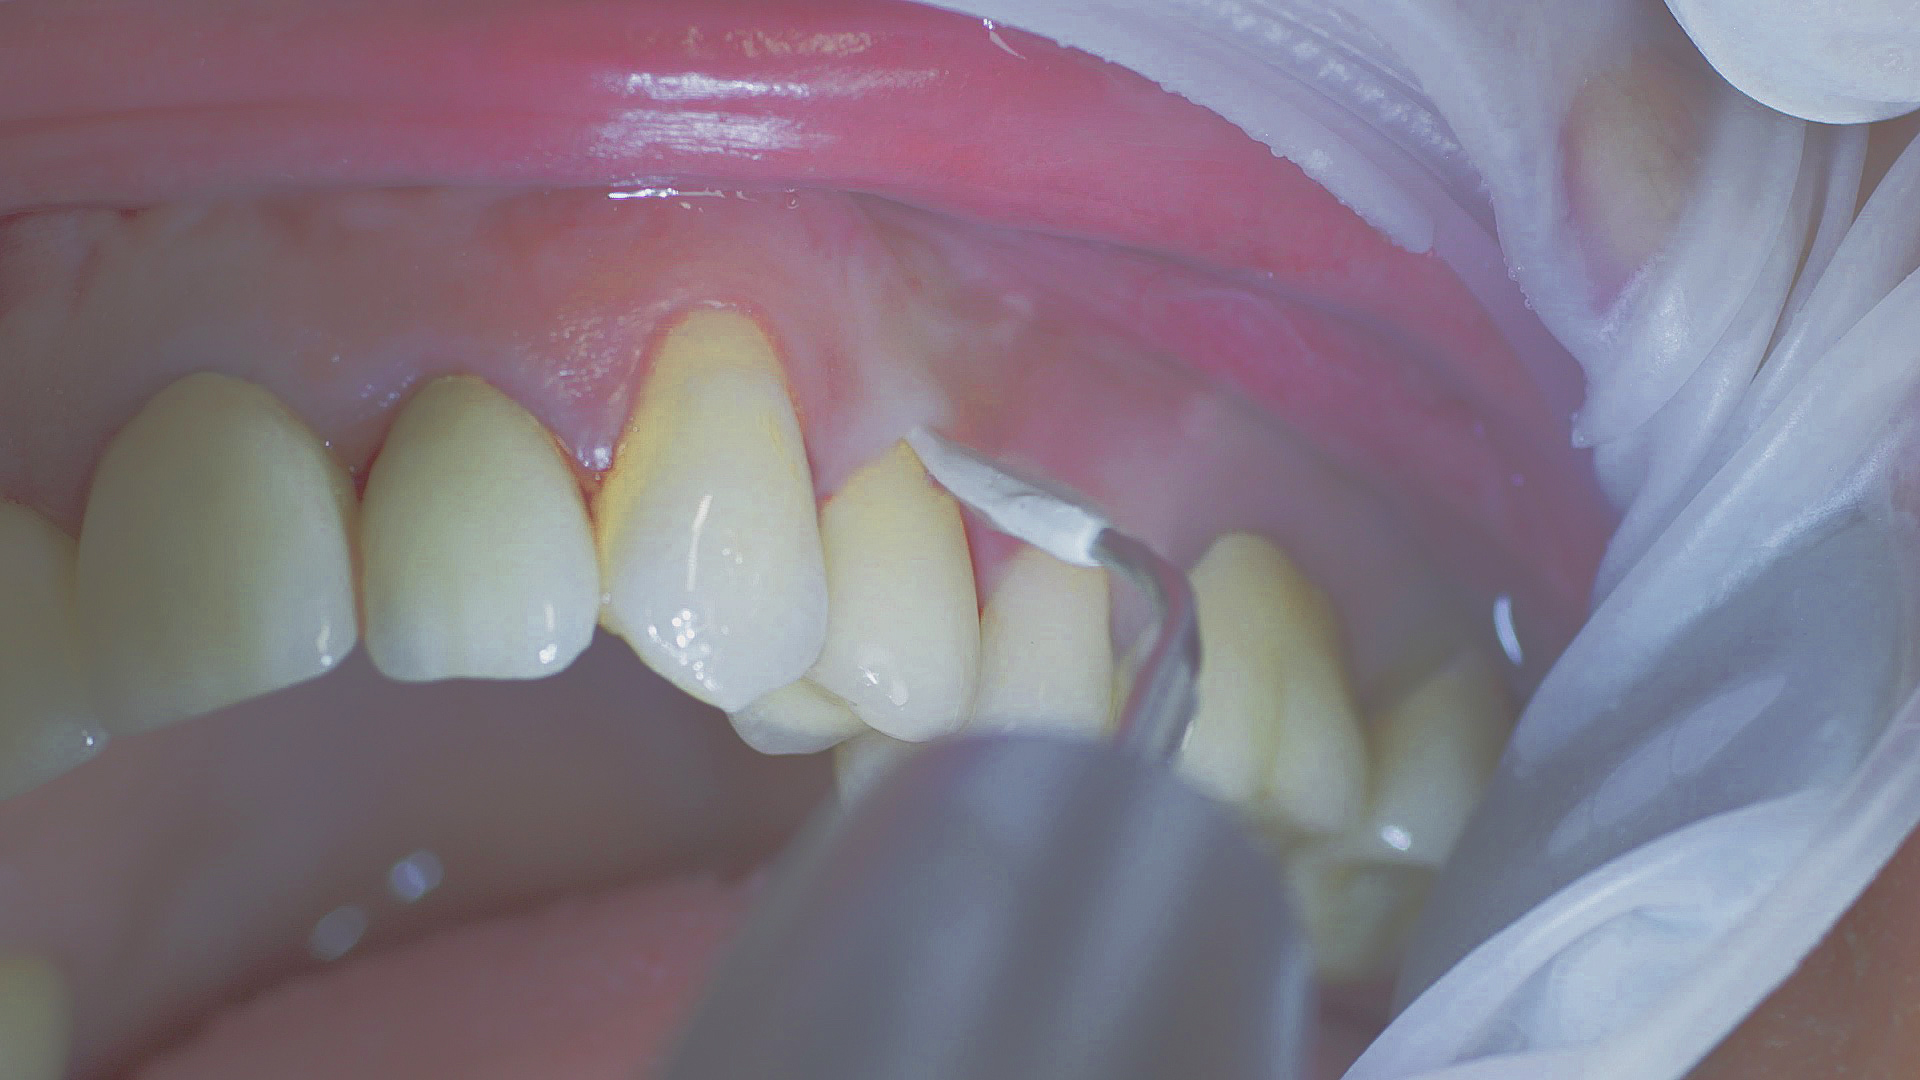 Implants and suprastructures are routinely cleaned